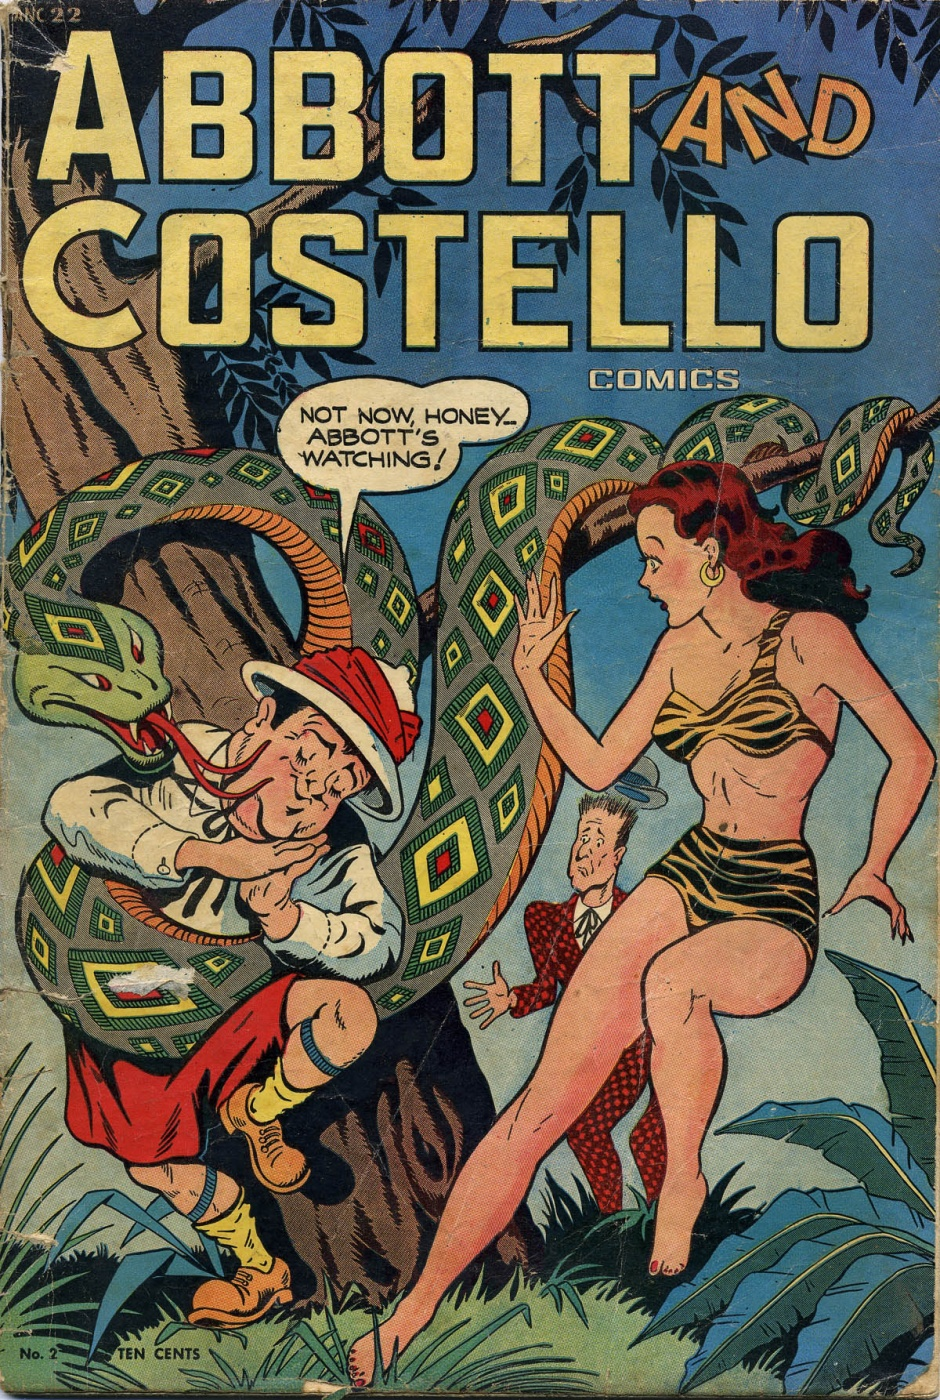 Abbott-Costello-Comics (b) (1)